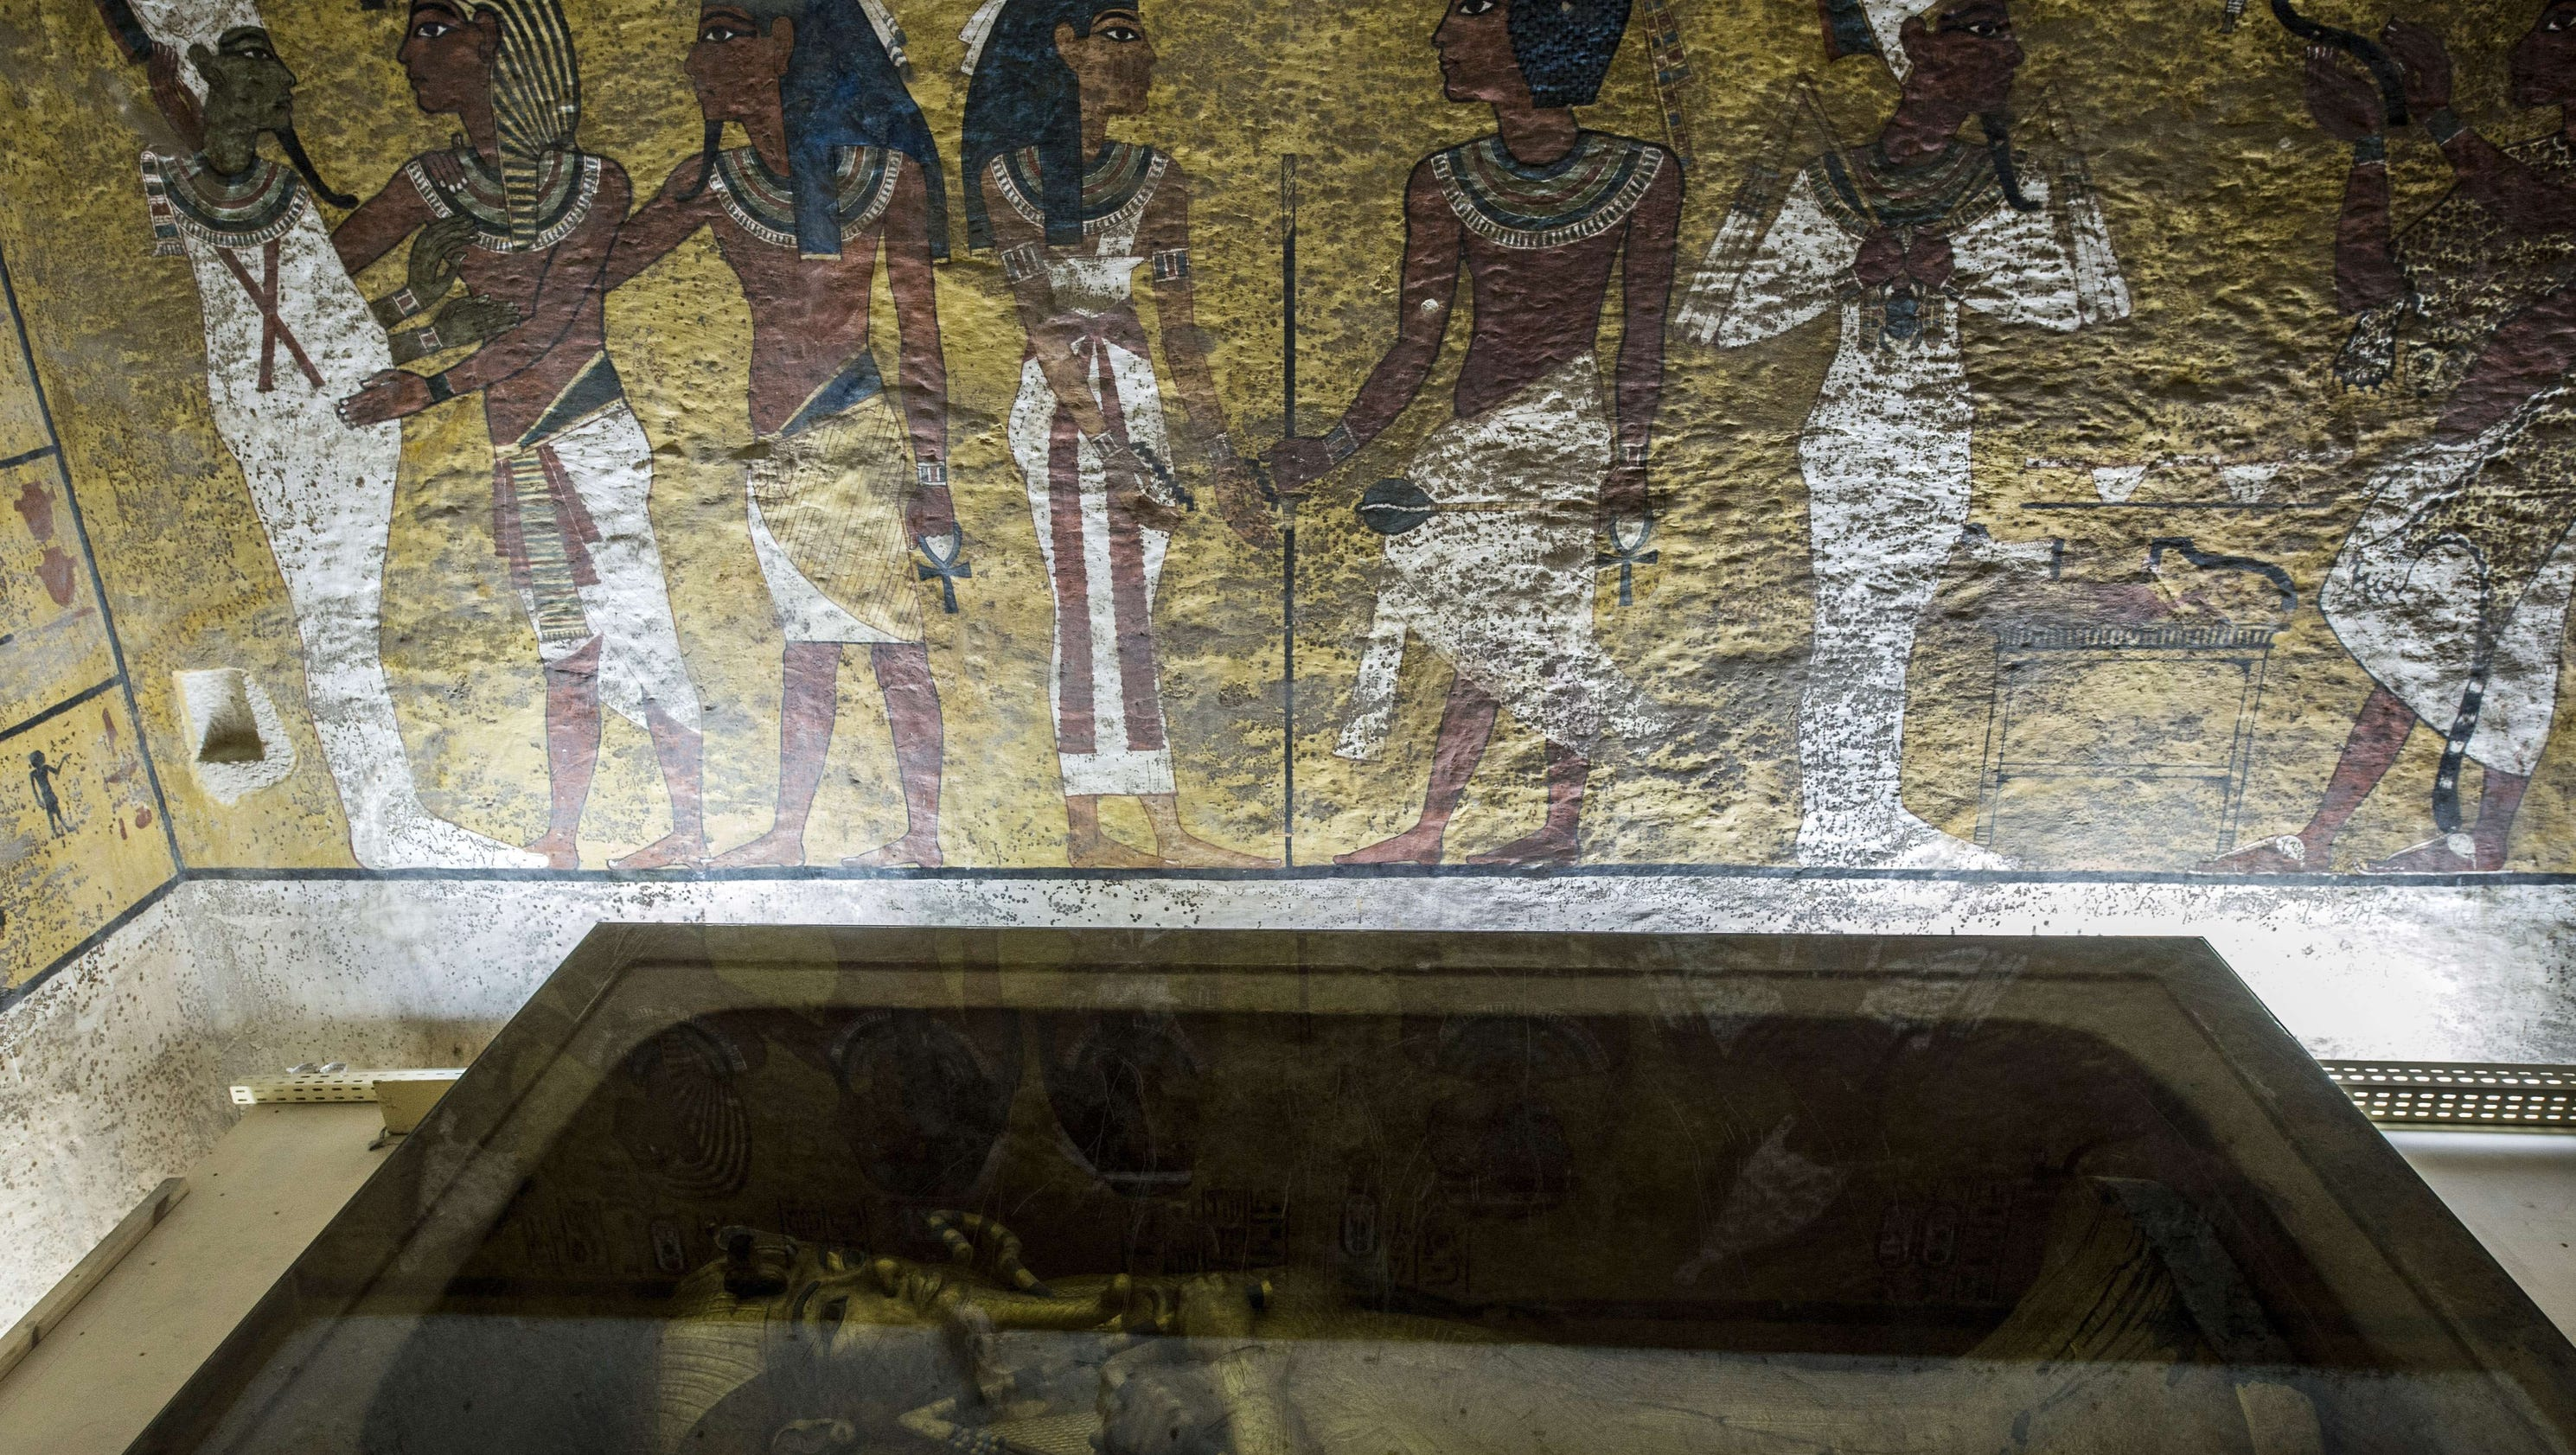 Egypt explores King Tuts tomb, searching for Queen Nefertiti